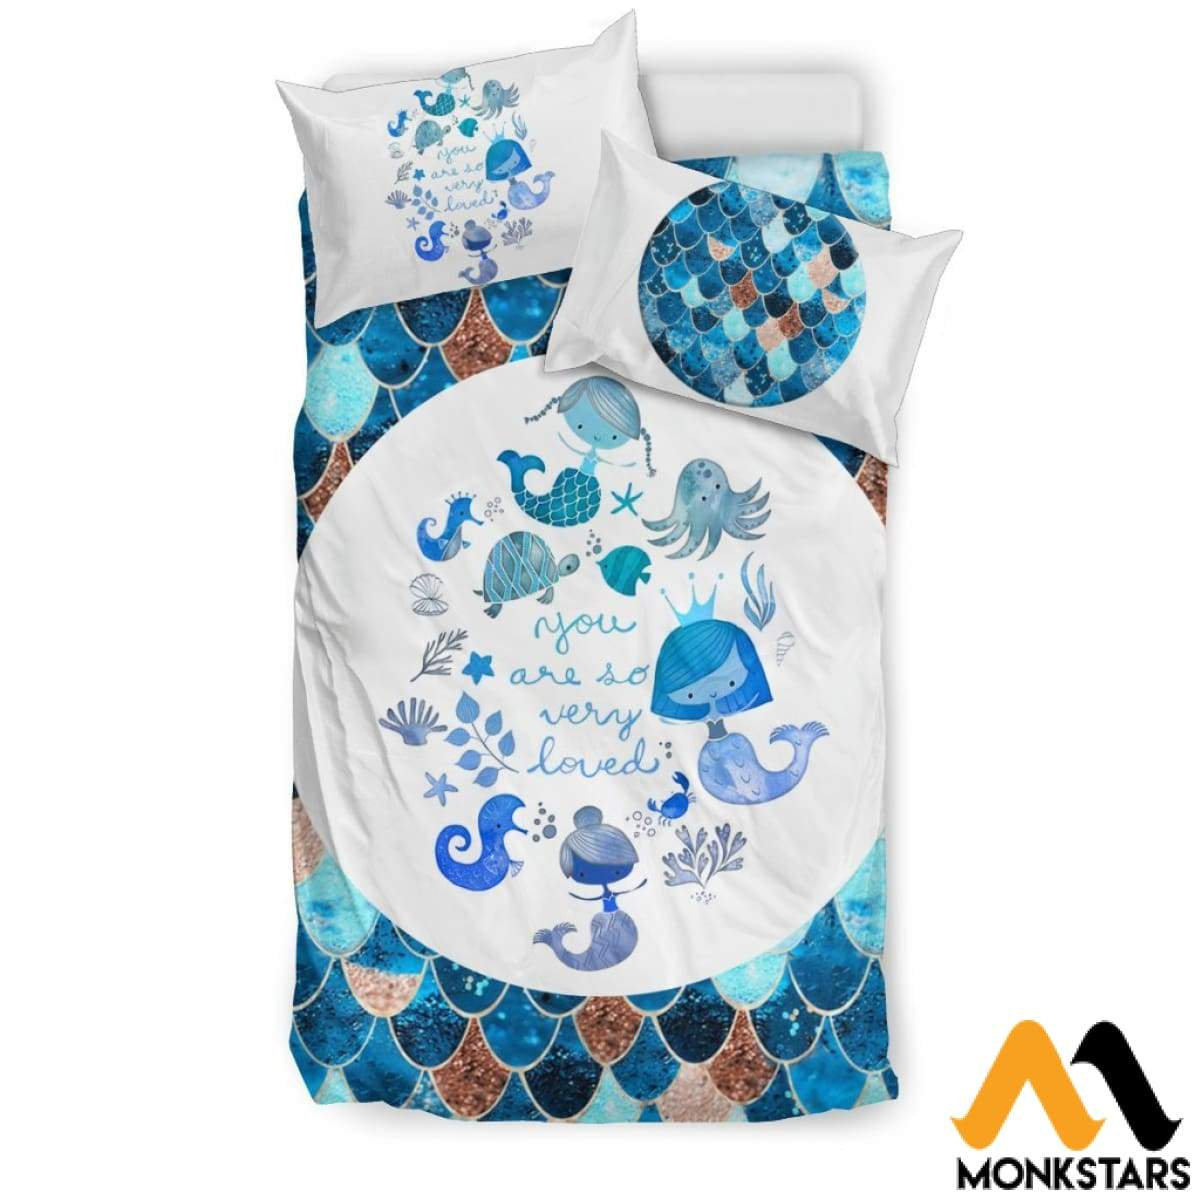 Bedding Set - Lovely Mermaid Black Beding / Twin